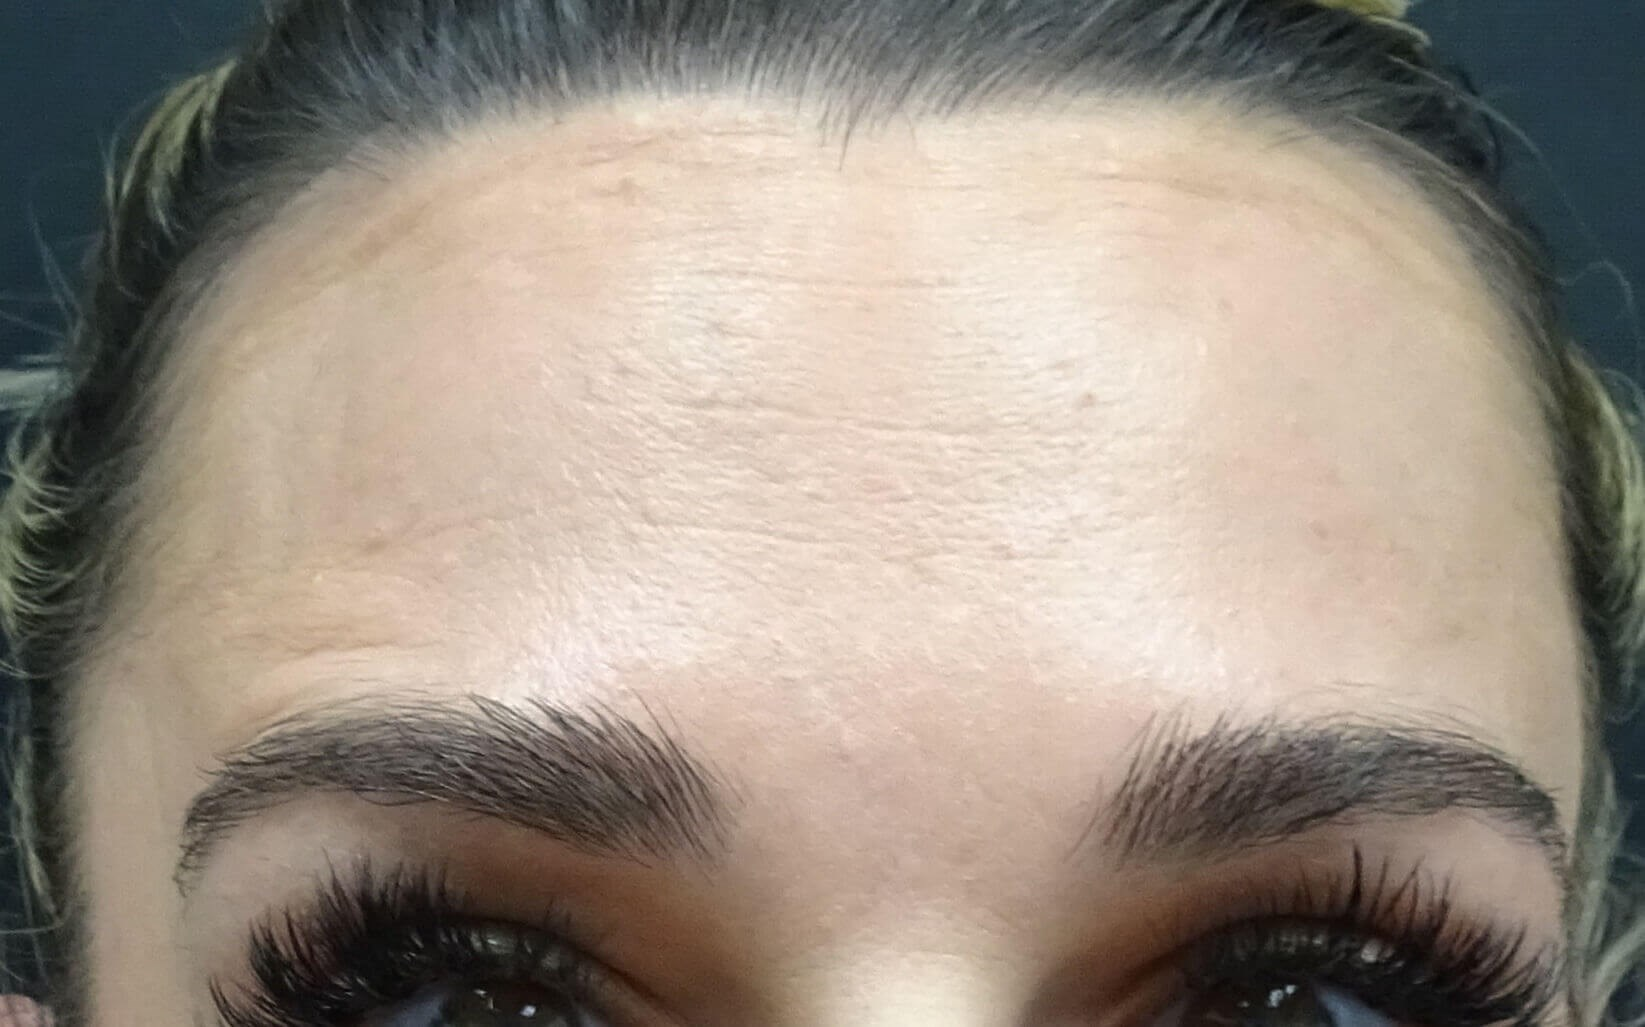 Botox for Las Vegas Patient After Botox & Dr. Lee